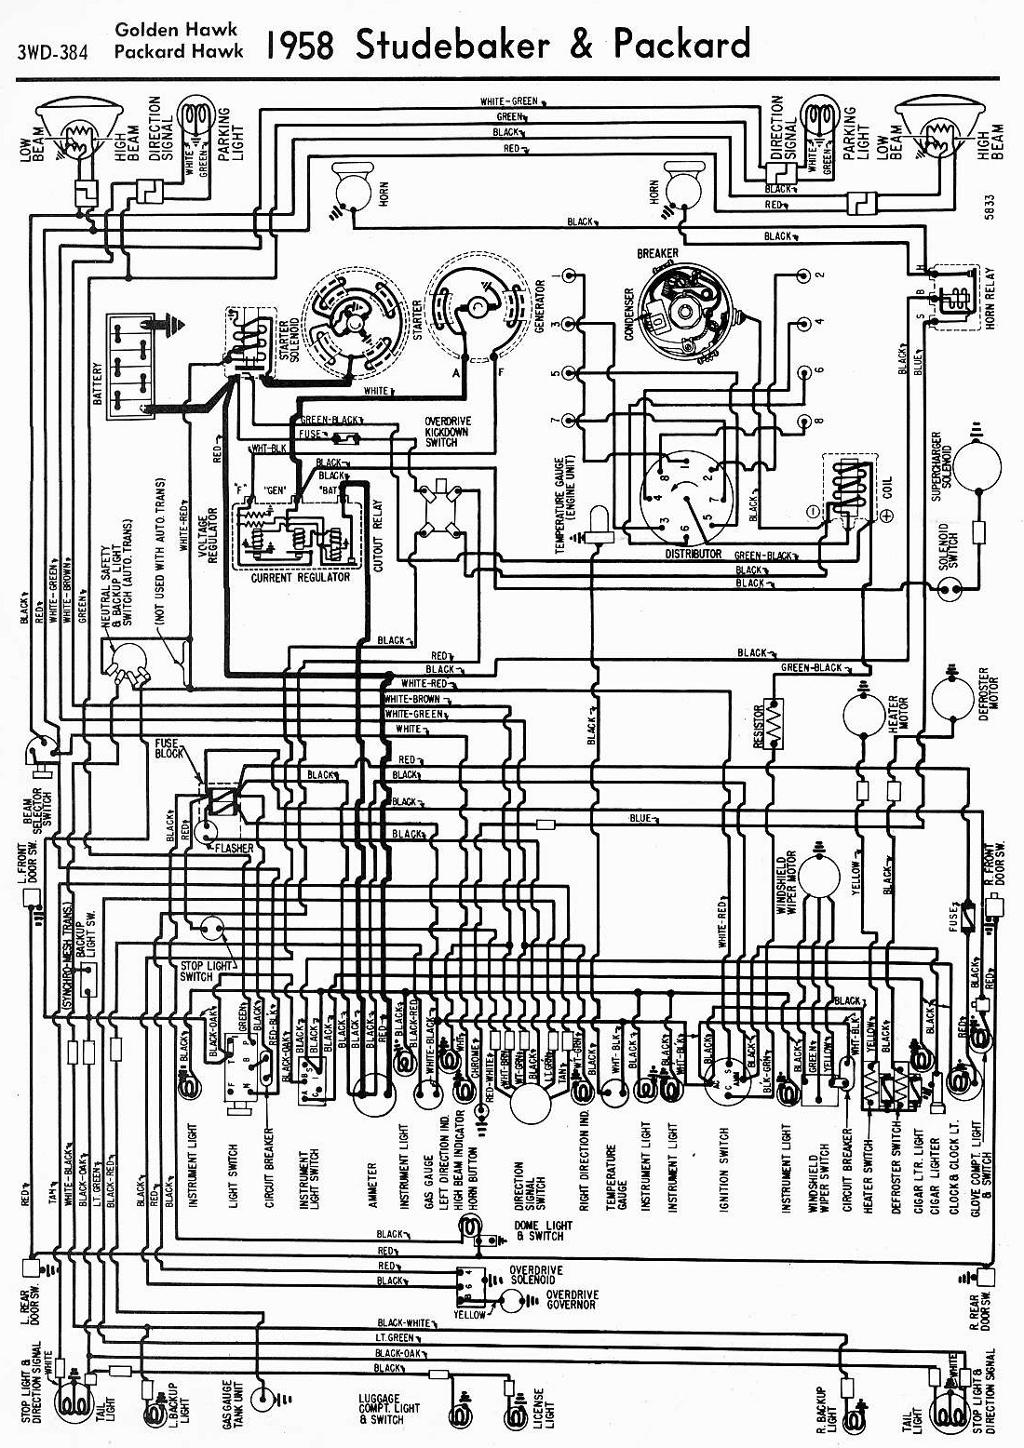 Packard Wiring 24vac Diagram - Schematics Wiring Diagrams • on mopar 318 engine, chrysler fuel diagrams, mopar big block, mopar start system diagram, smart car diagrams, mopar super bee, dodge truck electrical diagrams, mopar hemi engine, mopar barn finds, mopar junk yards, mopar starter relay, mopar hei wiring, mopar no car, mopar crate engines, mopar pin up, mopar resto mods, mopar street rods, mopar graveyard, mopar super stock, mopar desktop theme,